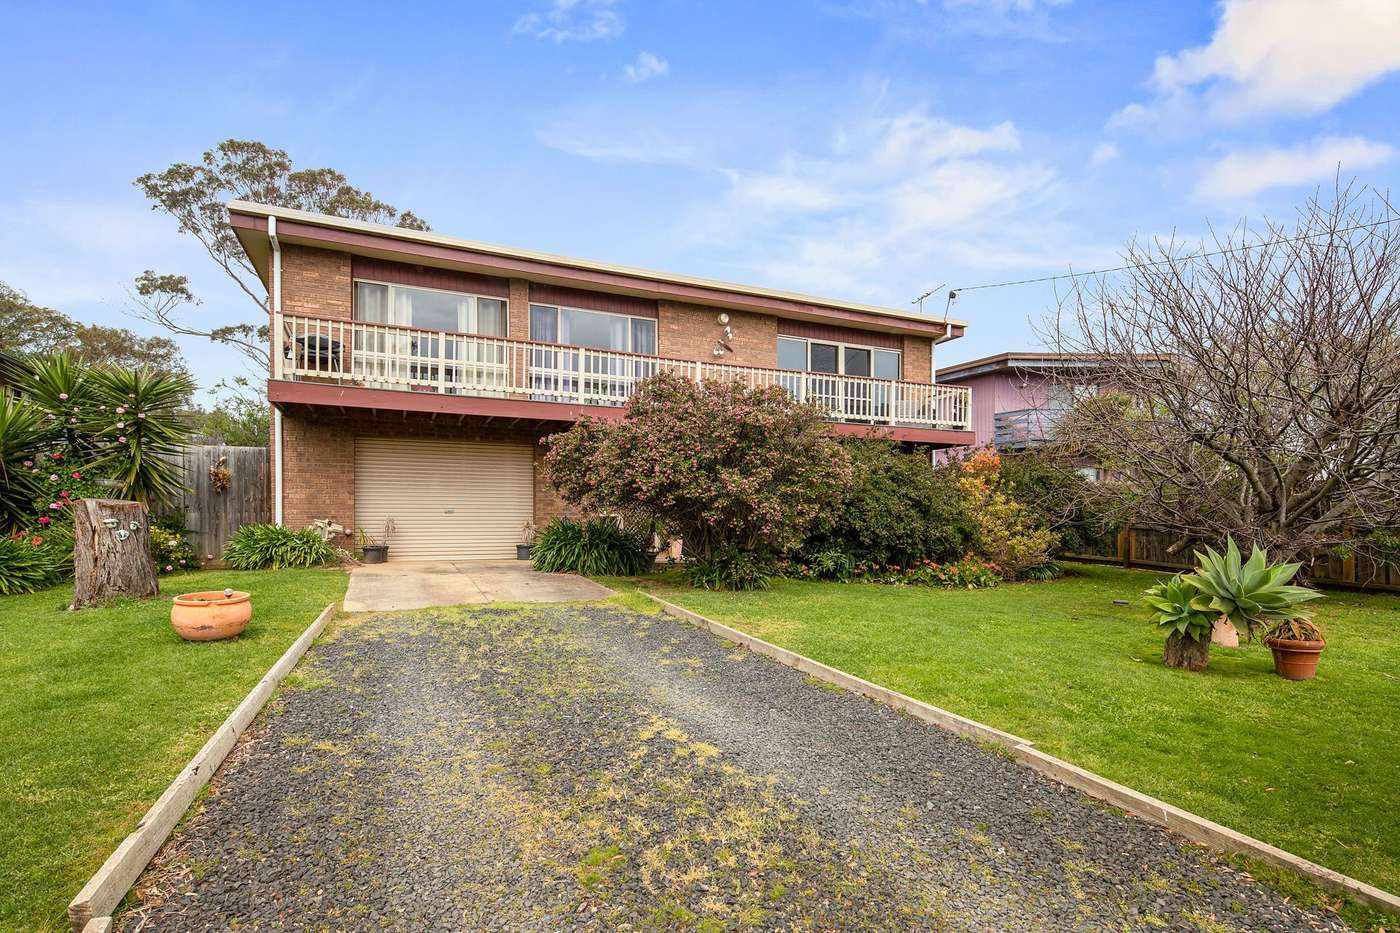 Main view of Homely house listing, 3 Teddy Bear Lane, Cowes, VIC 3922